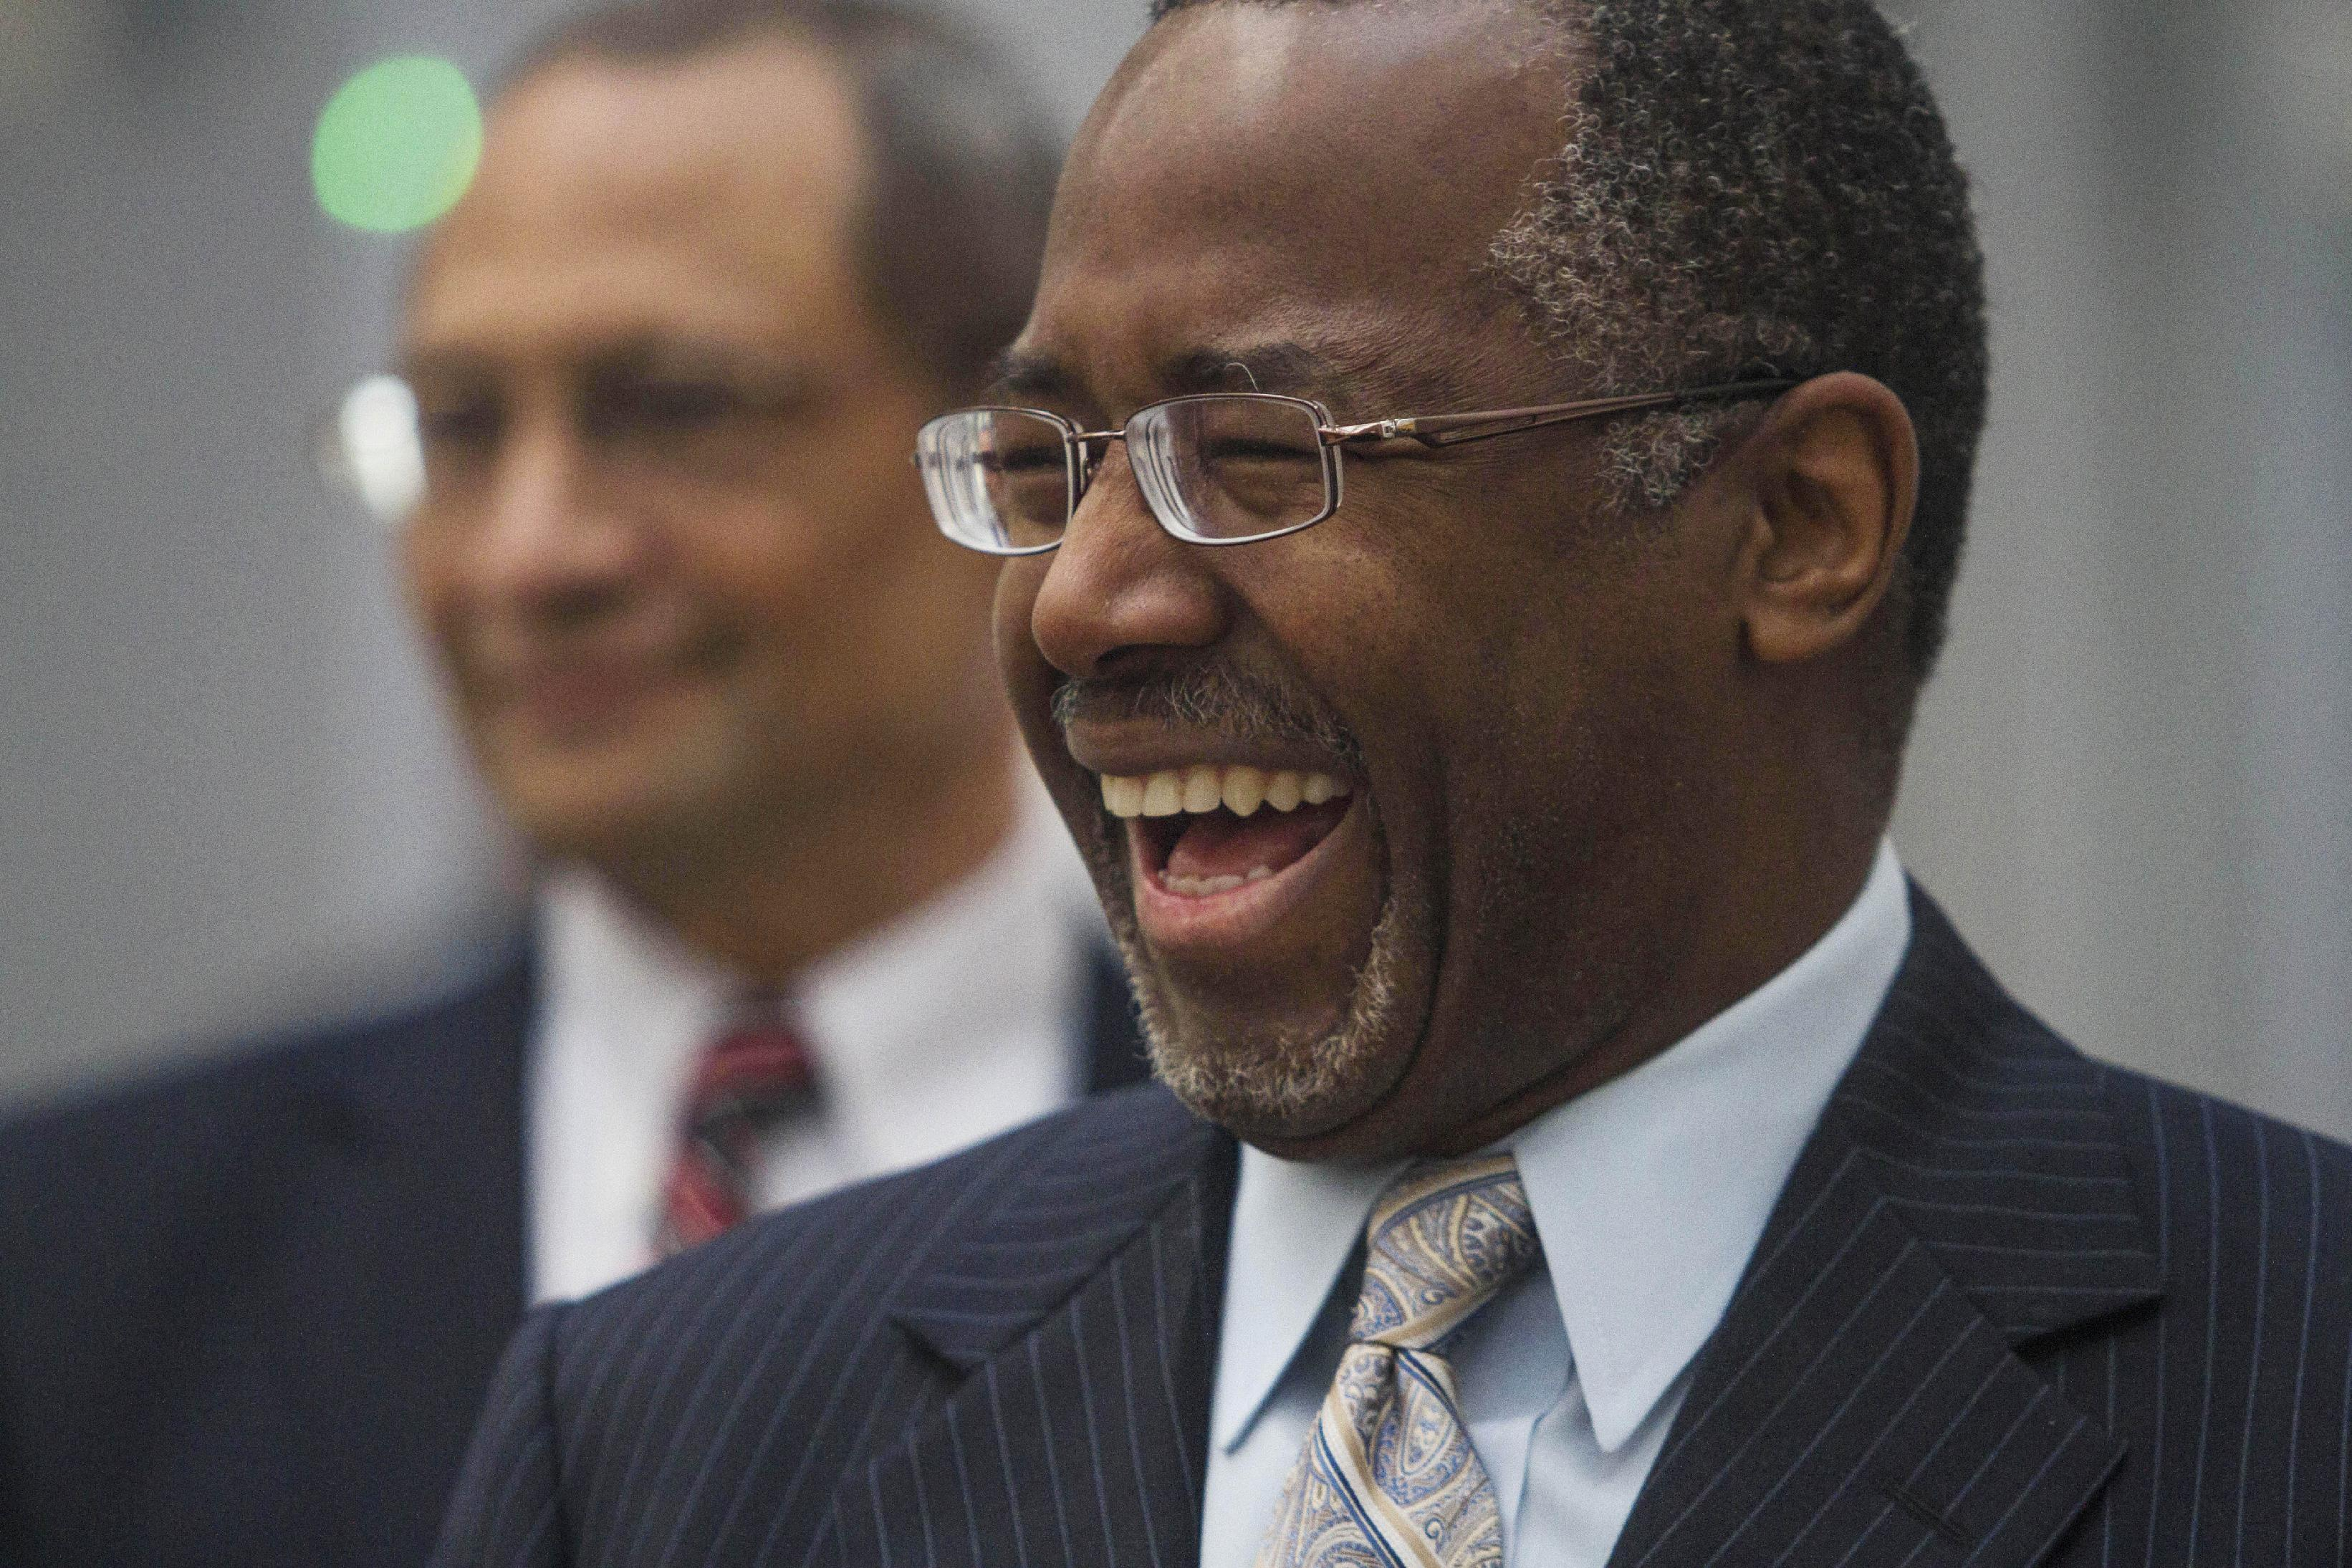 2016 hopeful Ben Carson pledges support for Israel